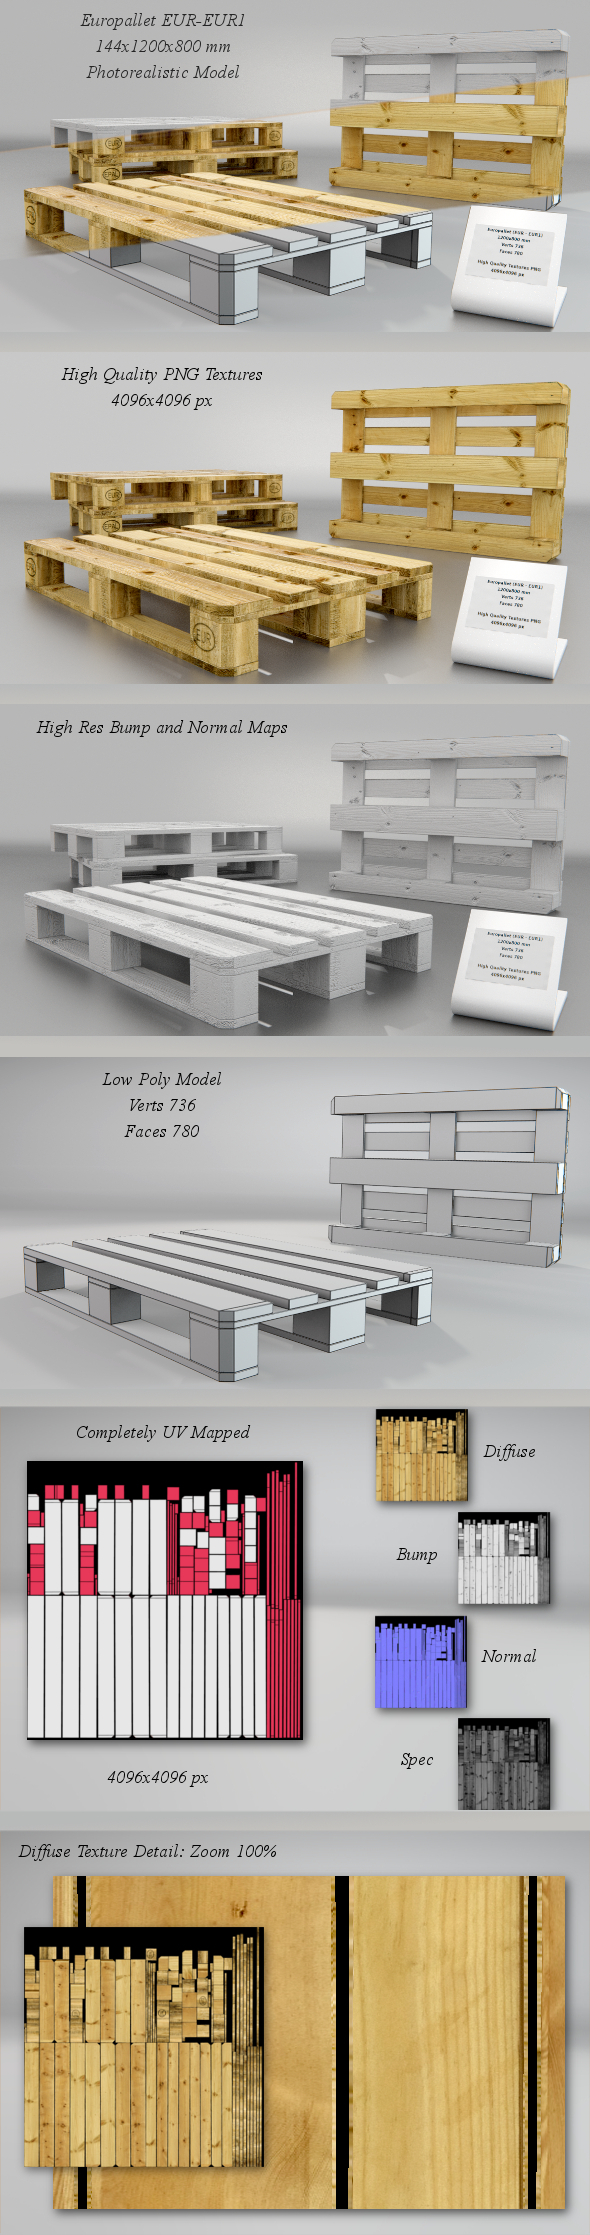 Low Poly Europallet - 3DOcean Item for Sale